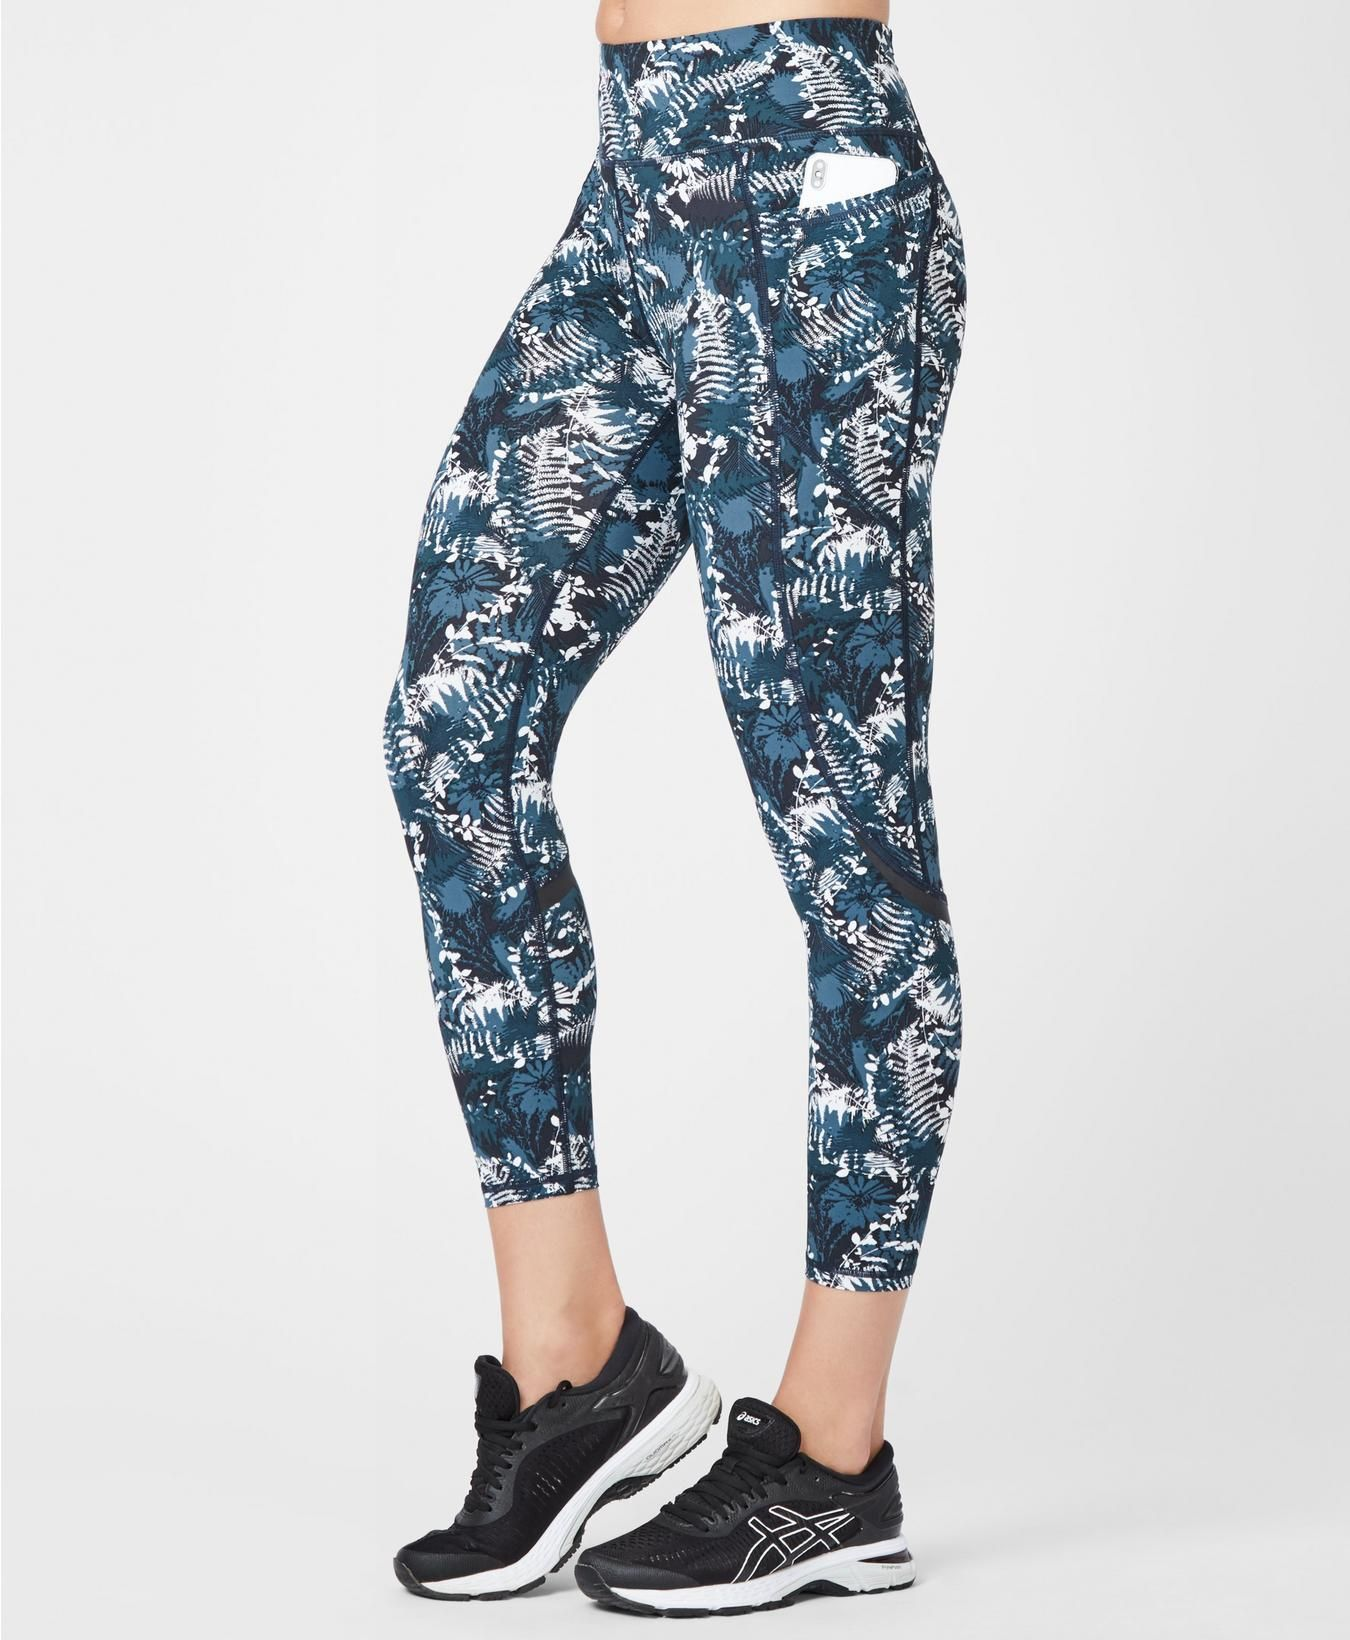 Best Leggings With Pockets Workout Leggings With Pockets